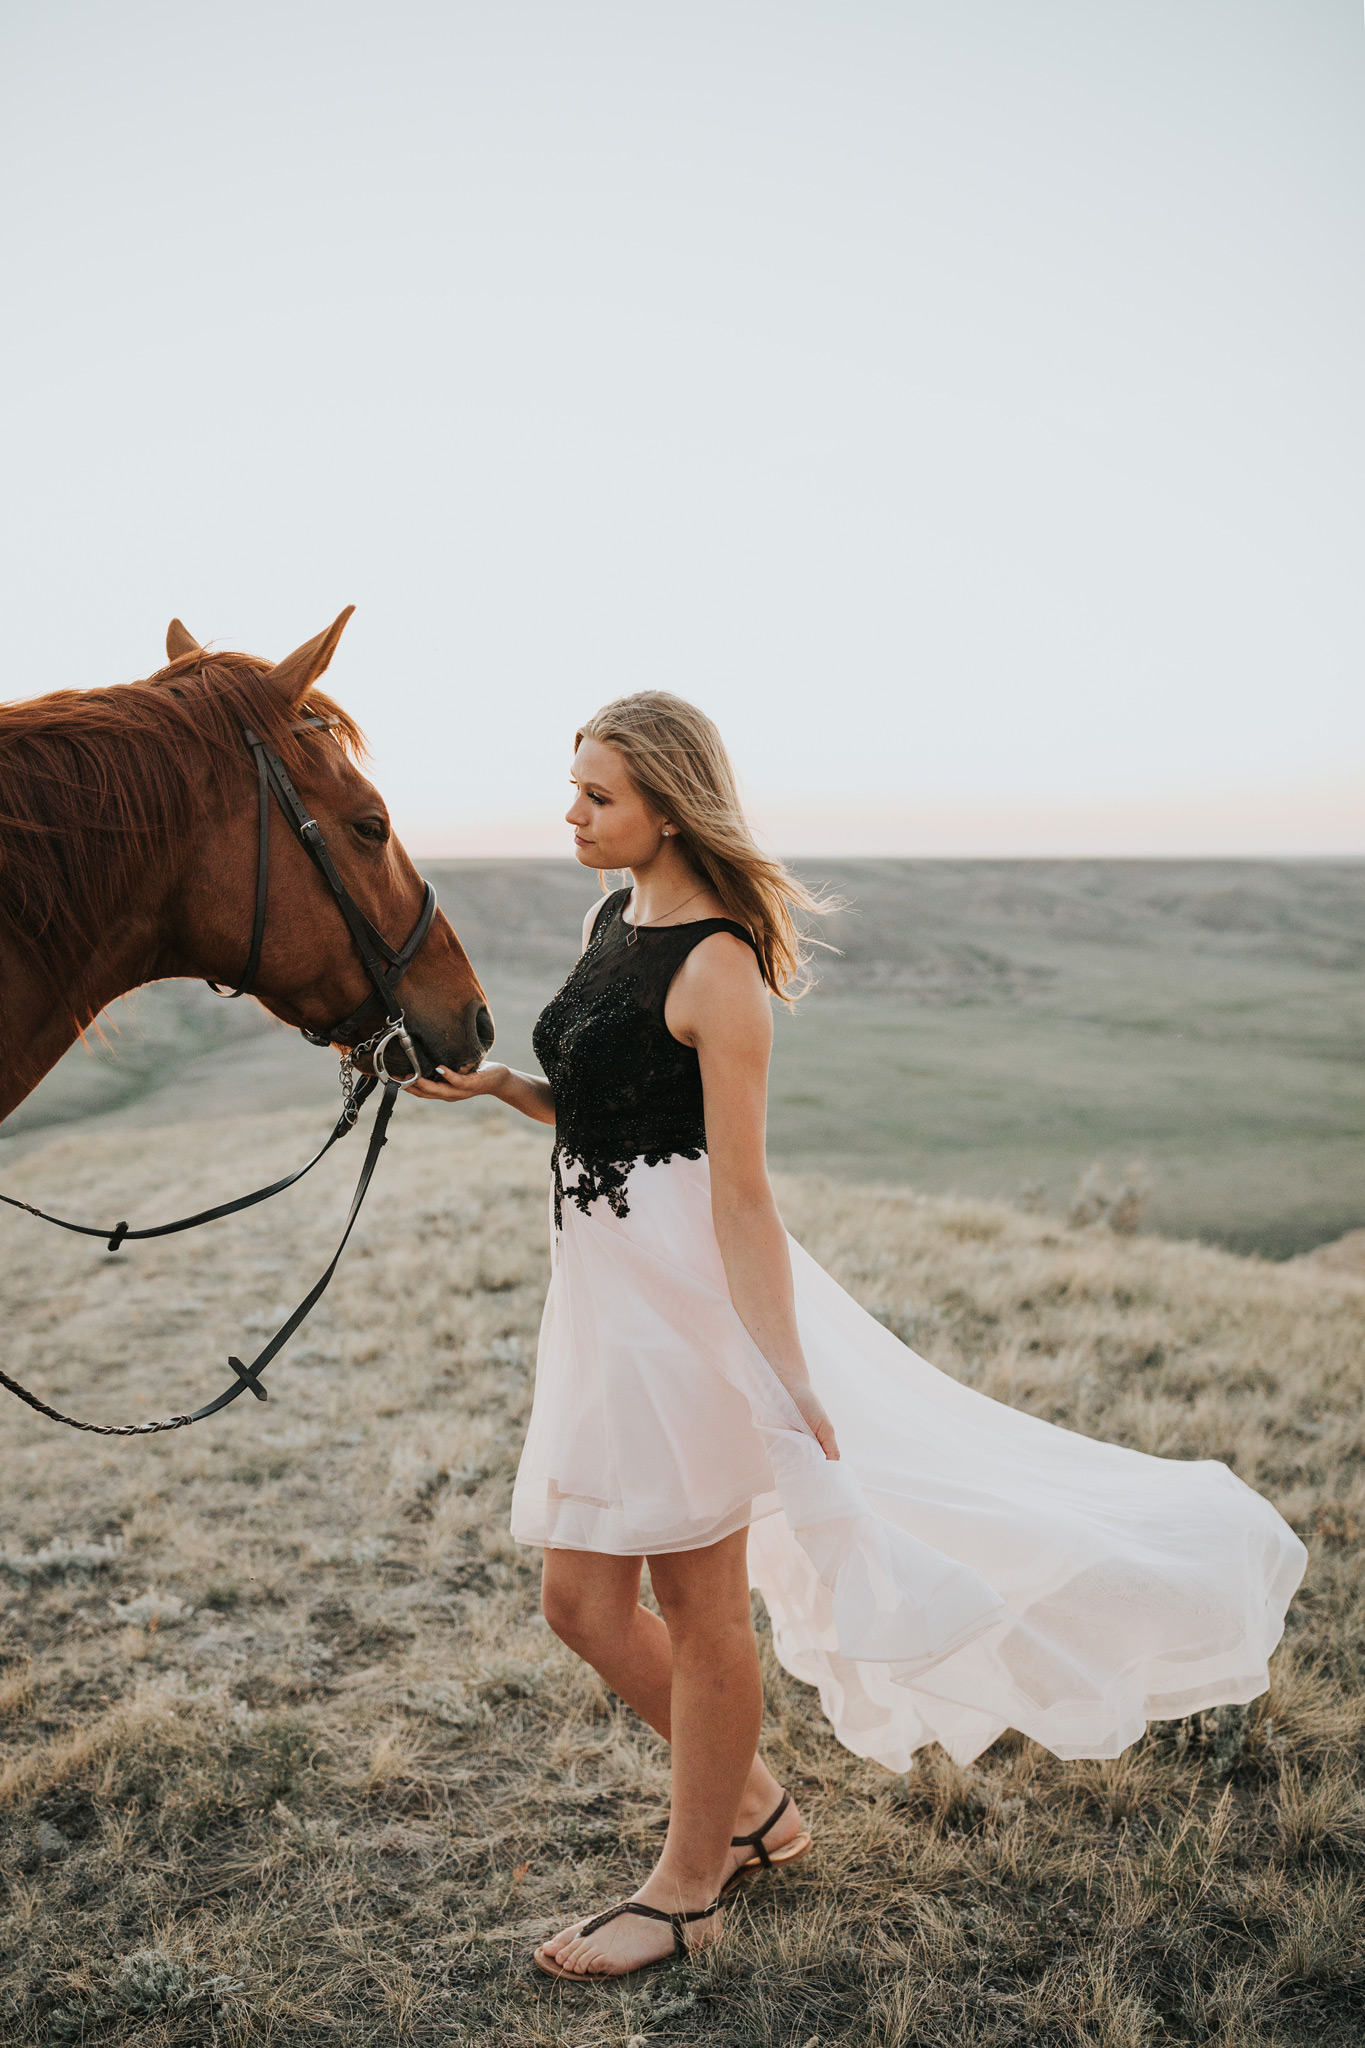 girl in prom dress facing horse equestrian photo